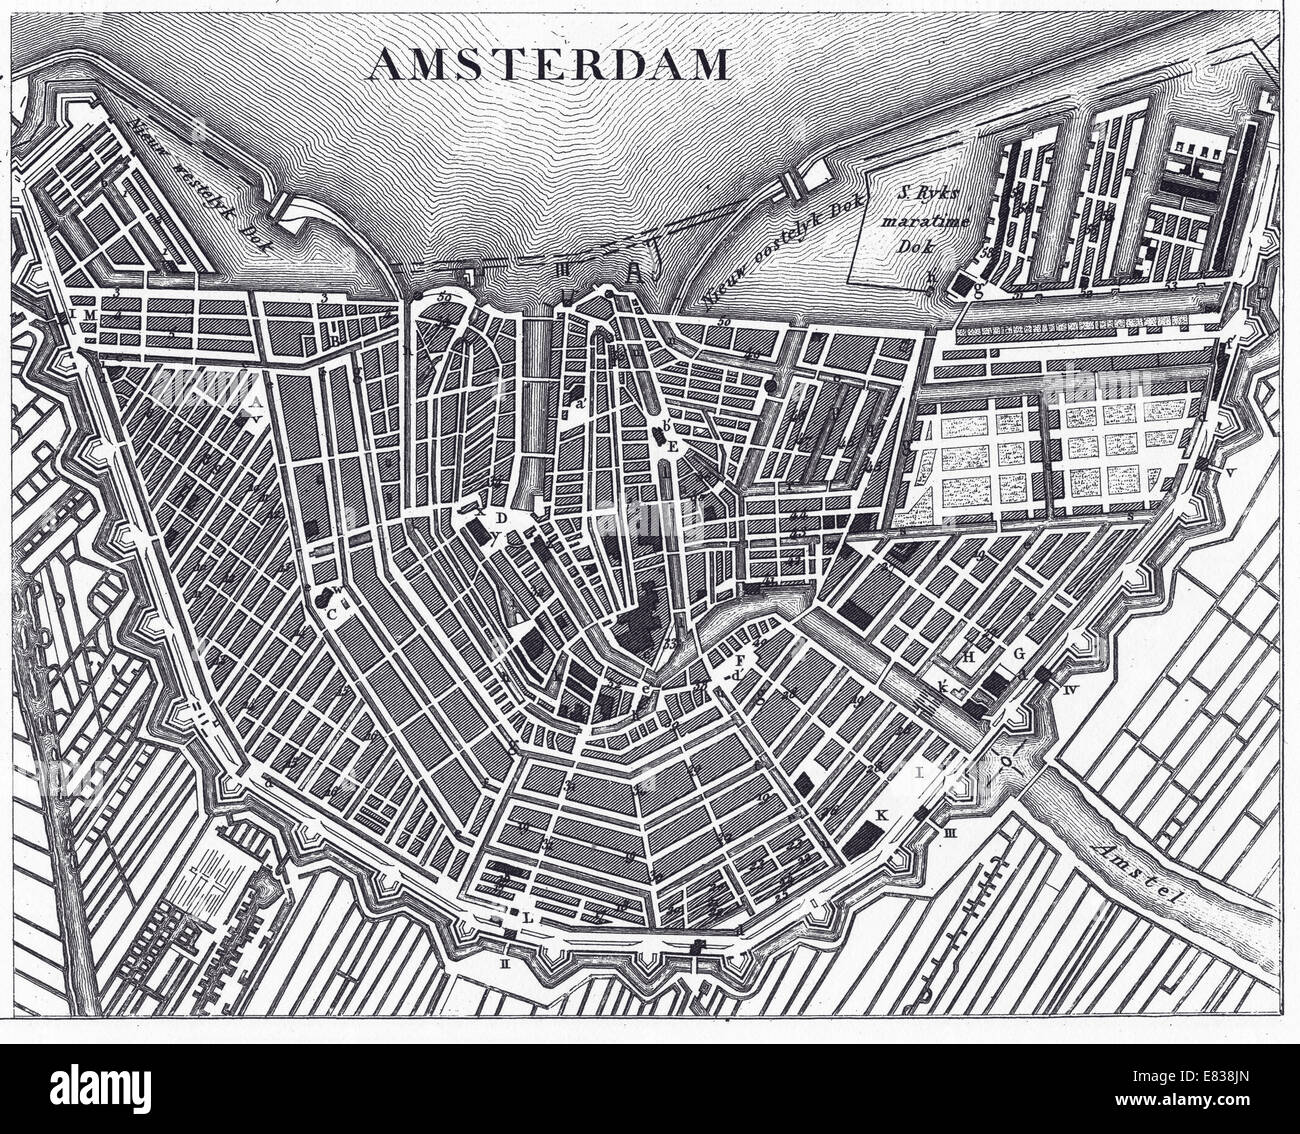 Old Map Of Holland Stock Photos Old Map Of Holland Stock Images - Amsterdam old map